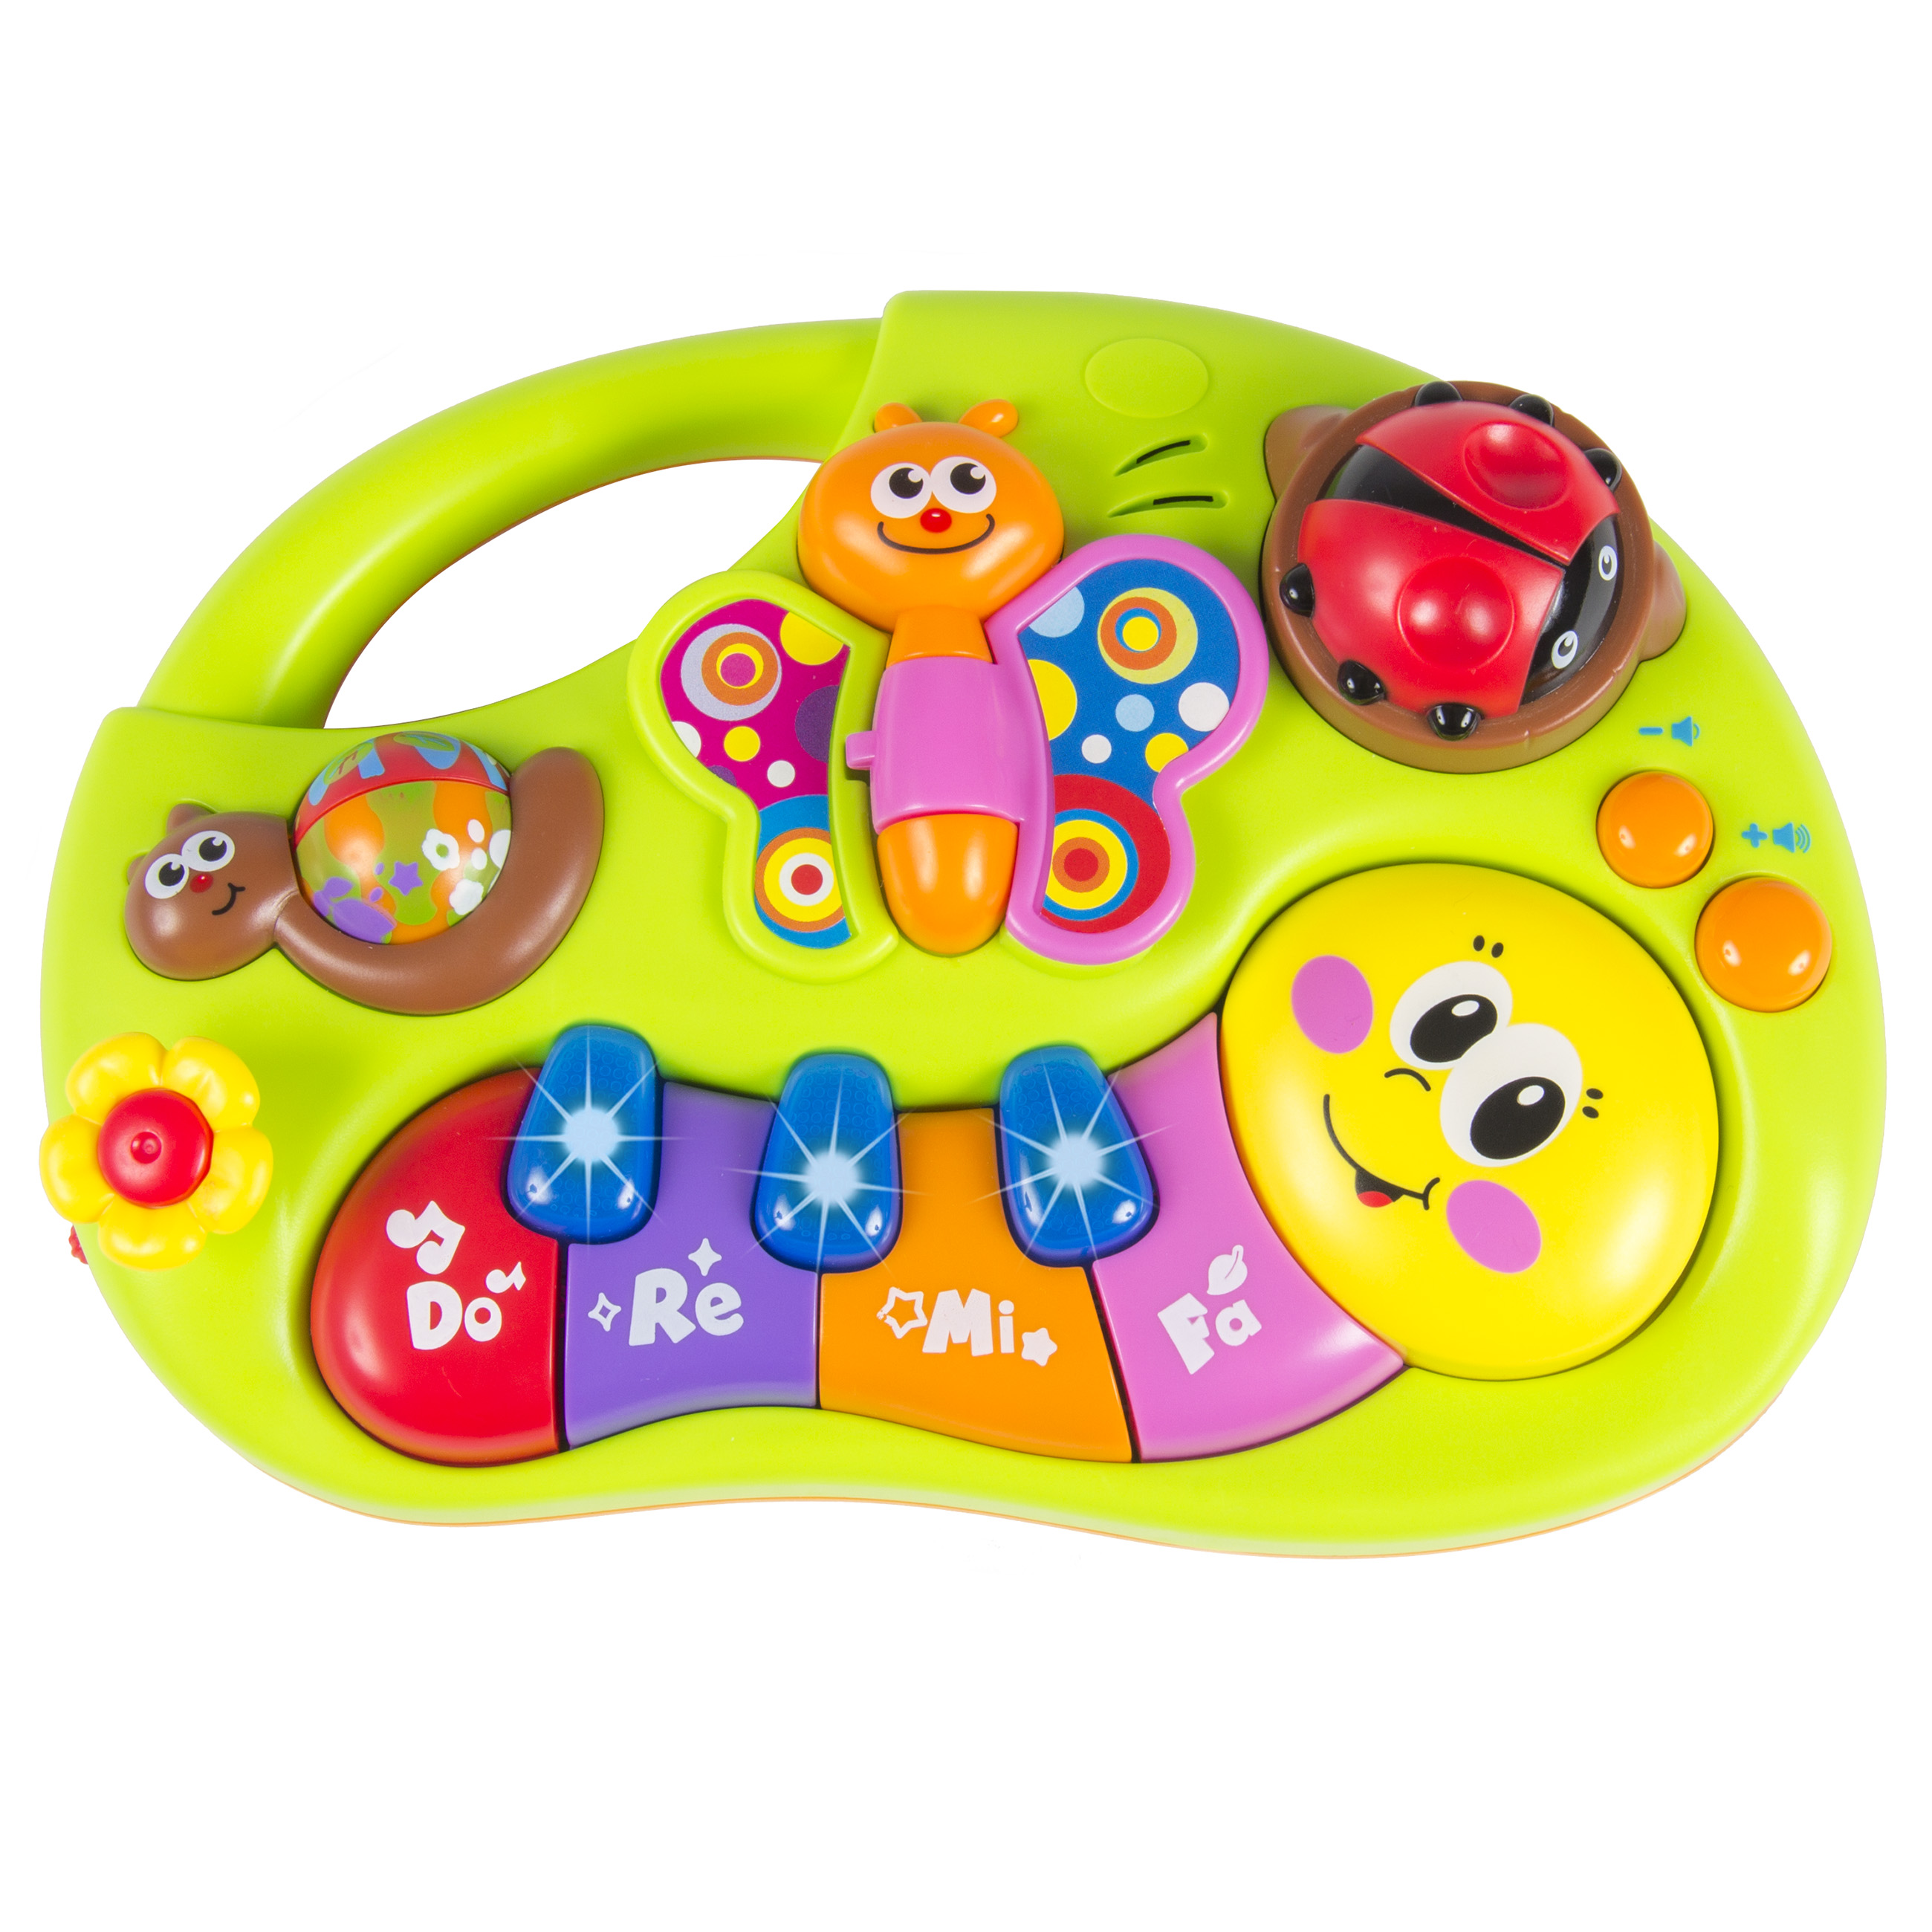 Toddler Educational Learning Machine Toy with Lights Music Songs